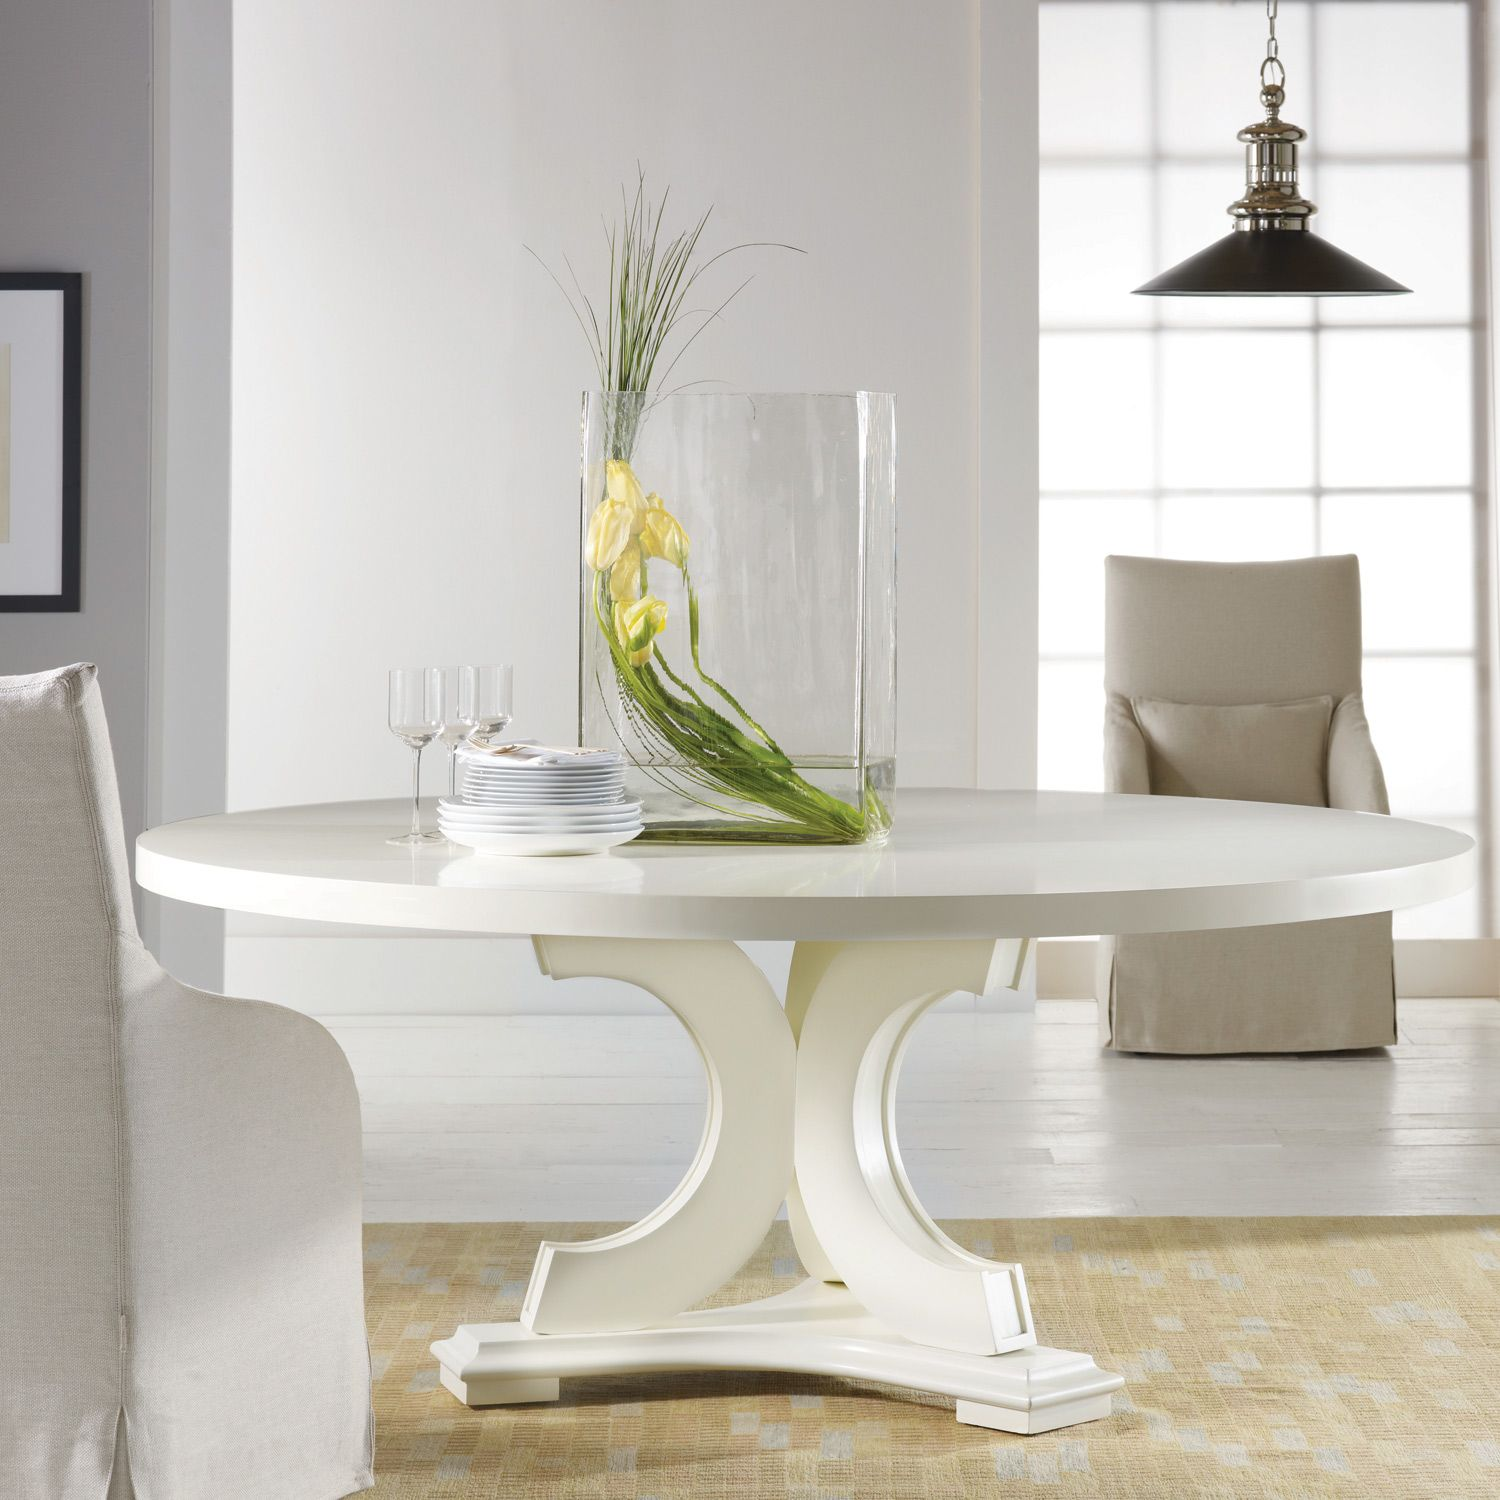 Apartment Size Furniture Round Dining Room Tables White: Malibu Loft Round Dining Table